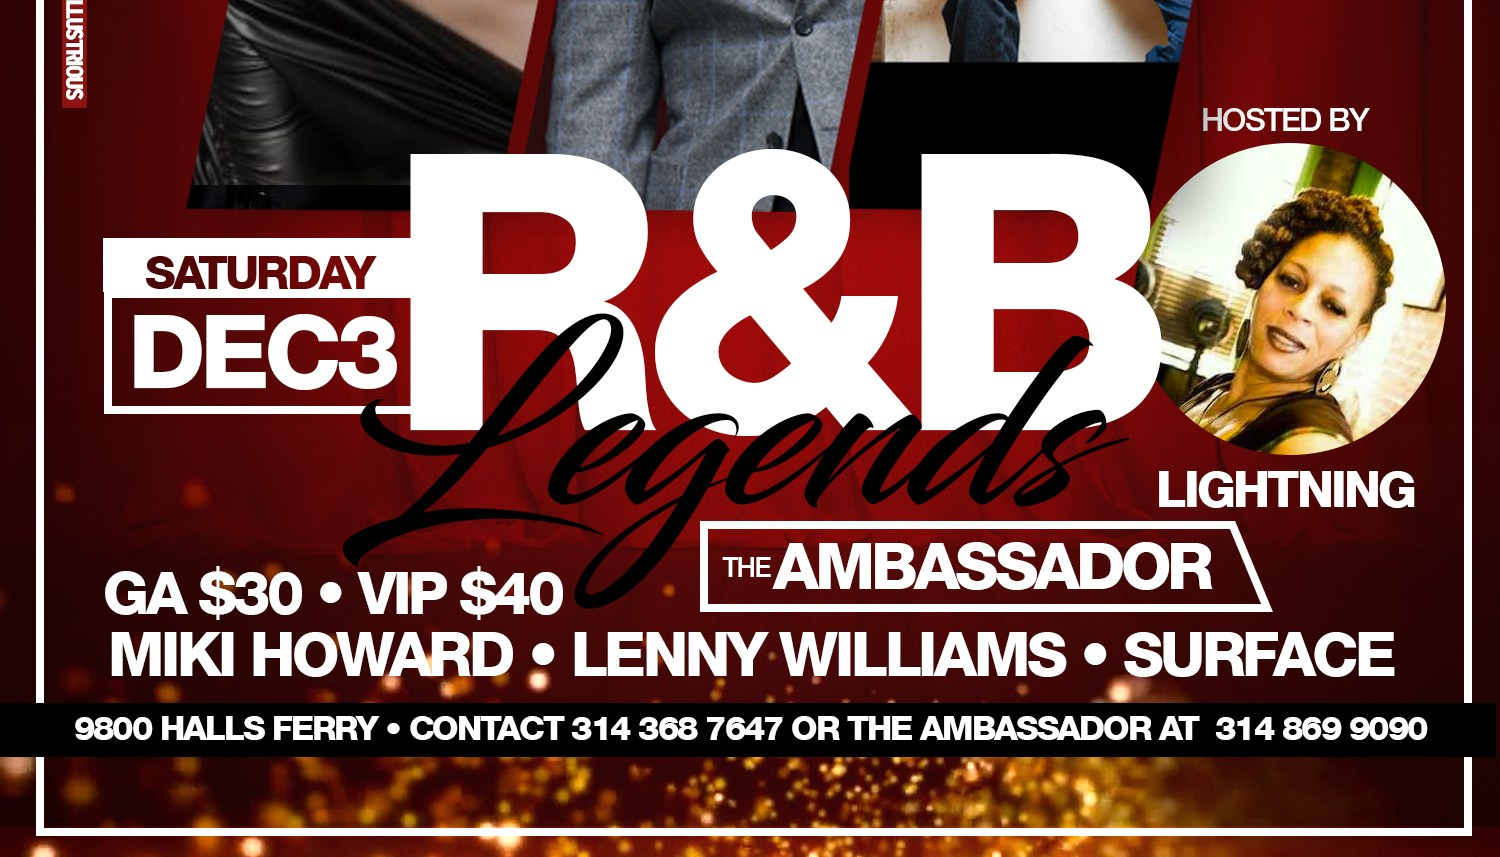 R&B Legends at The Ambassador